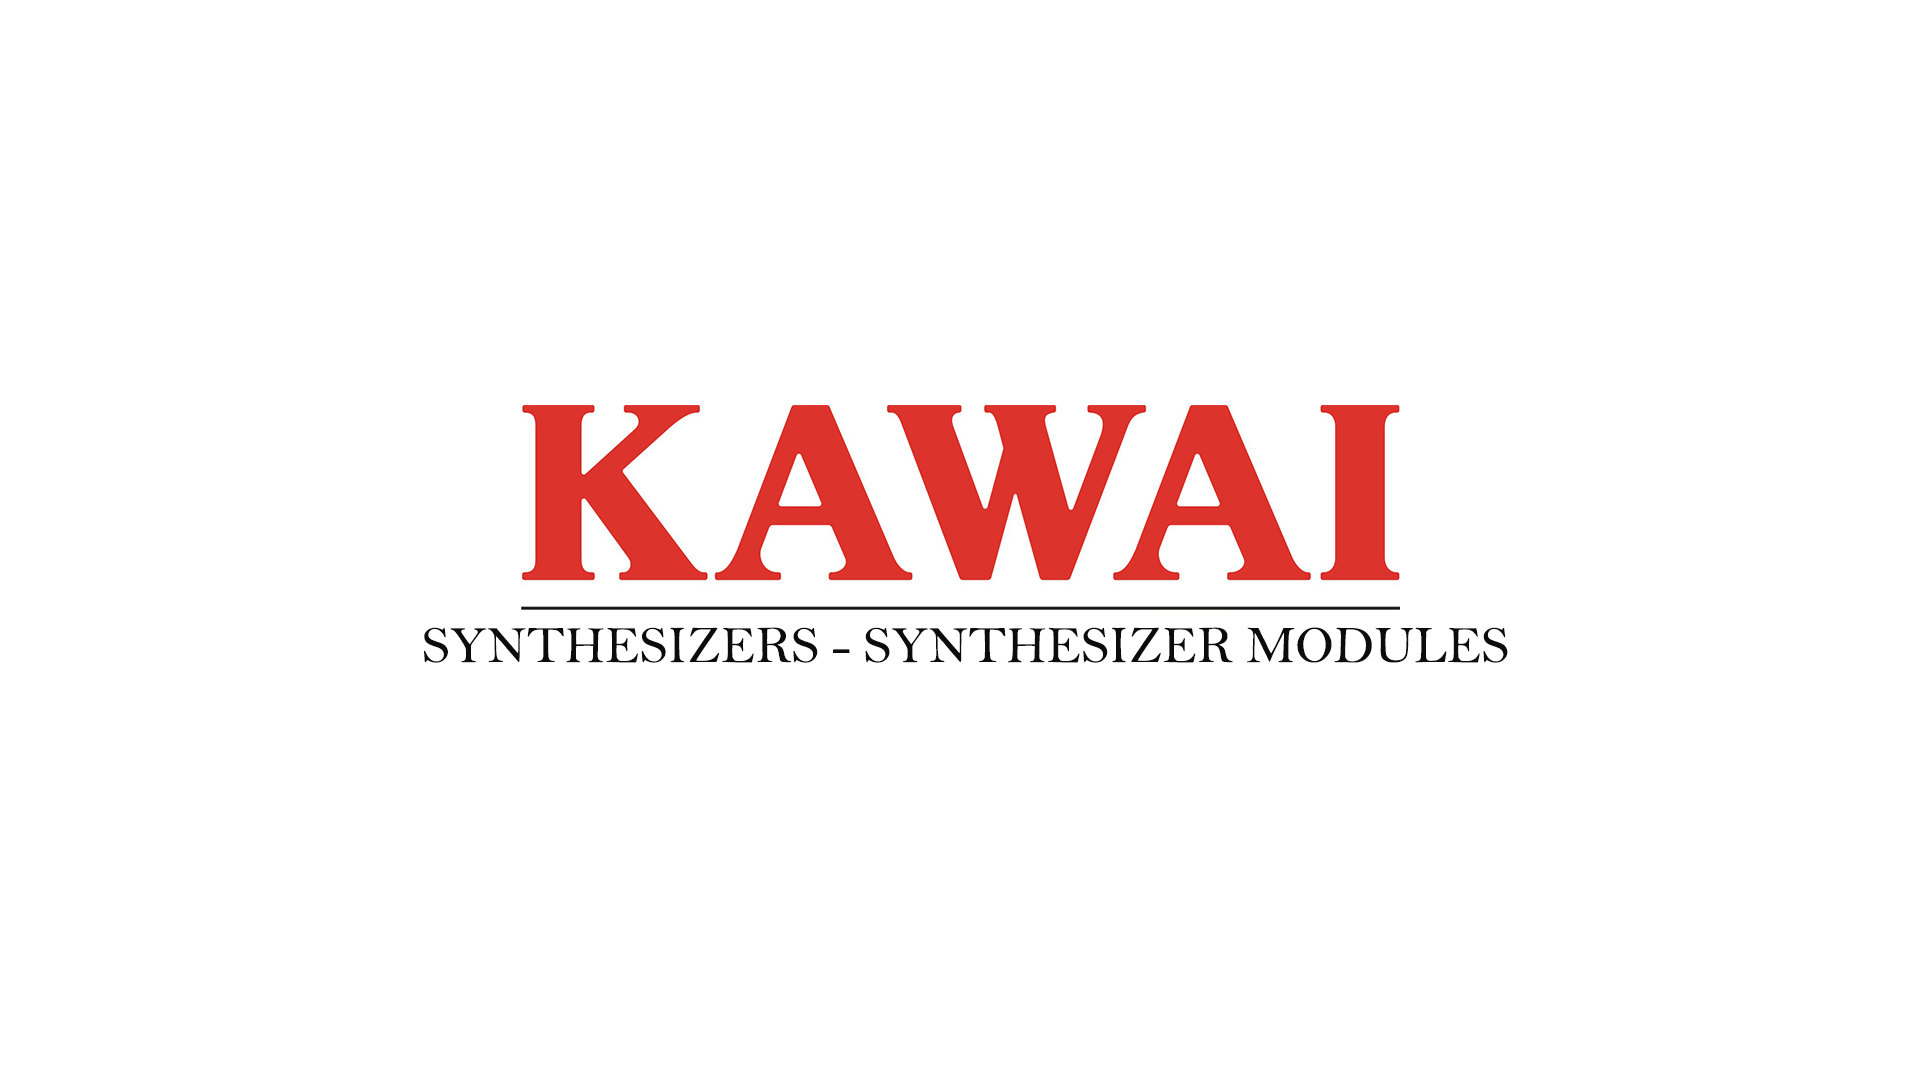 Kawai Synthesizers - Synthesizer Modules Owner's Manuals